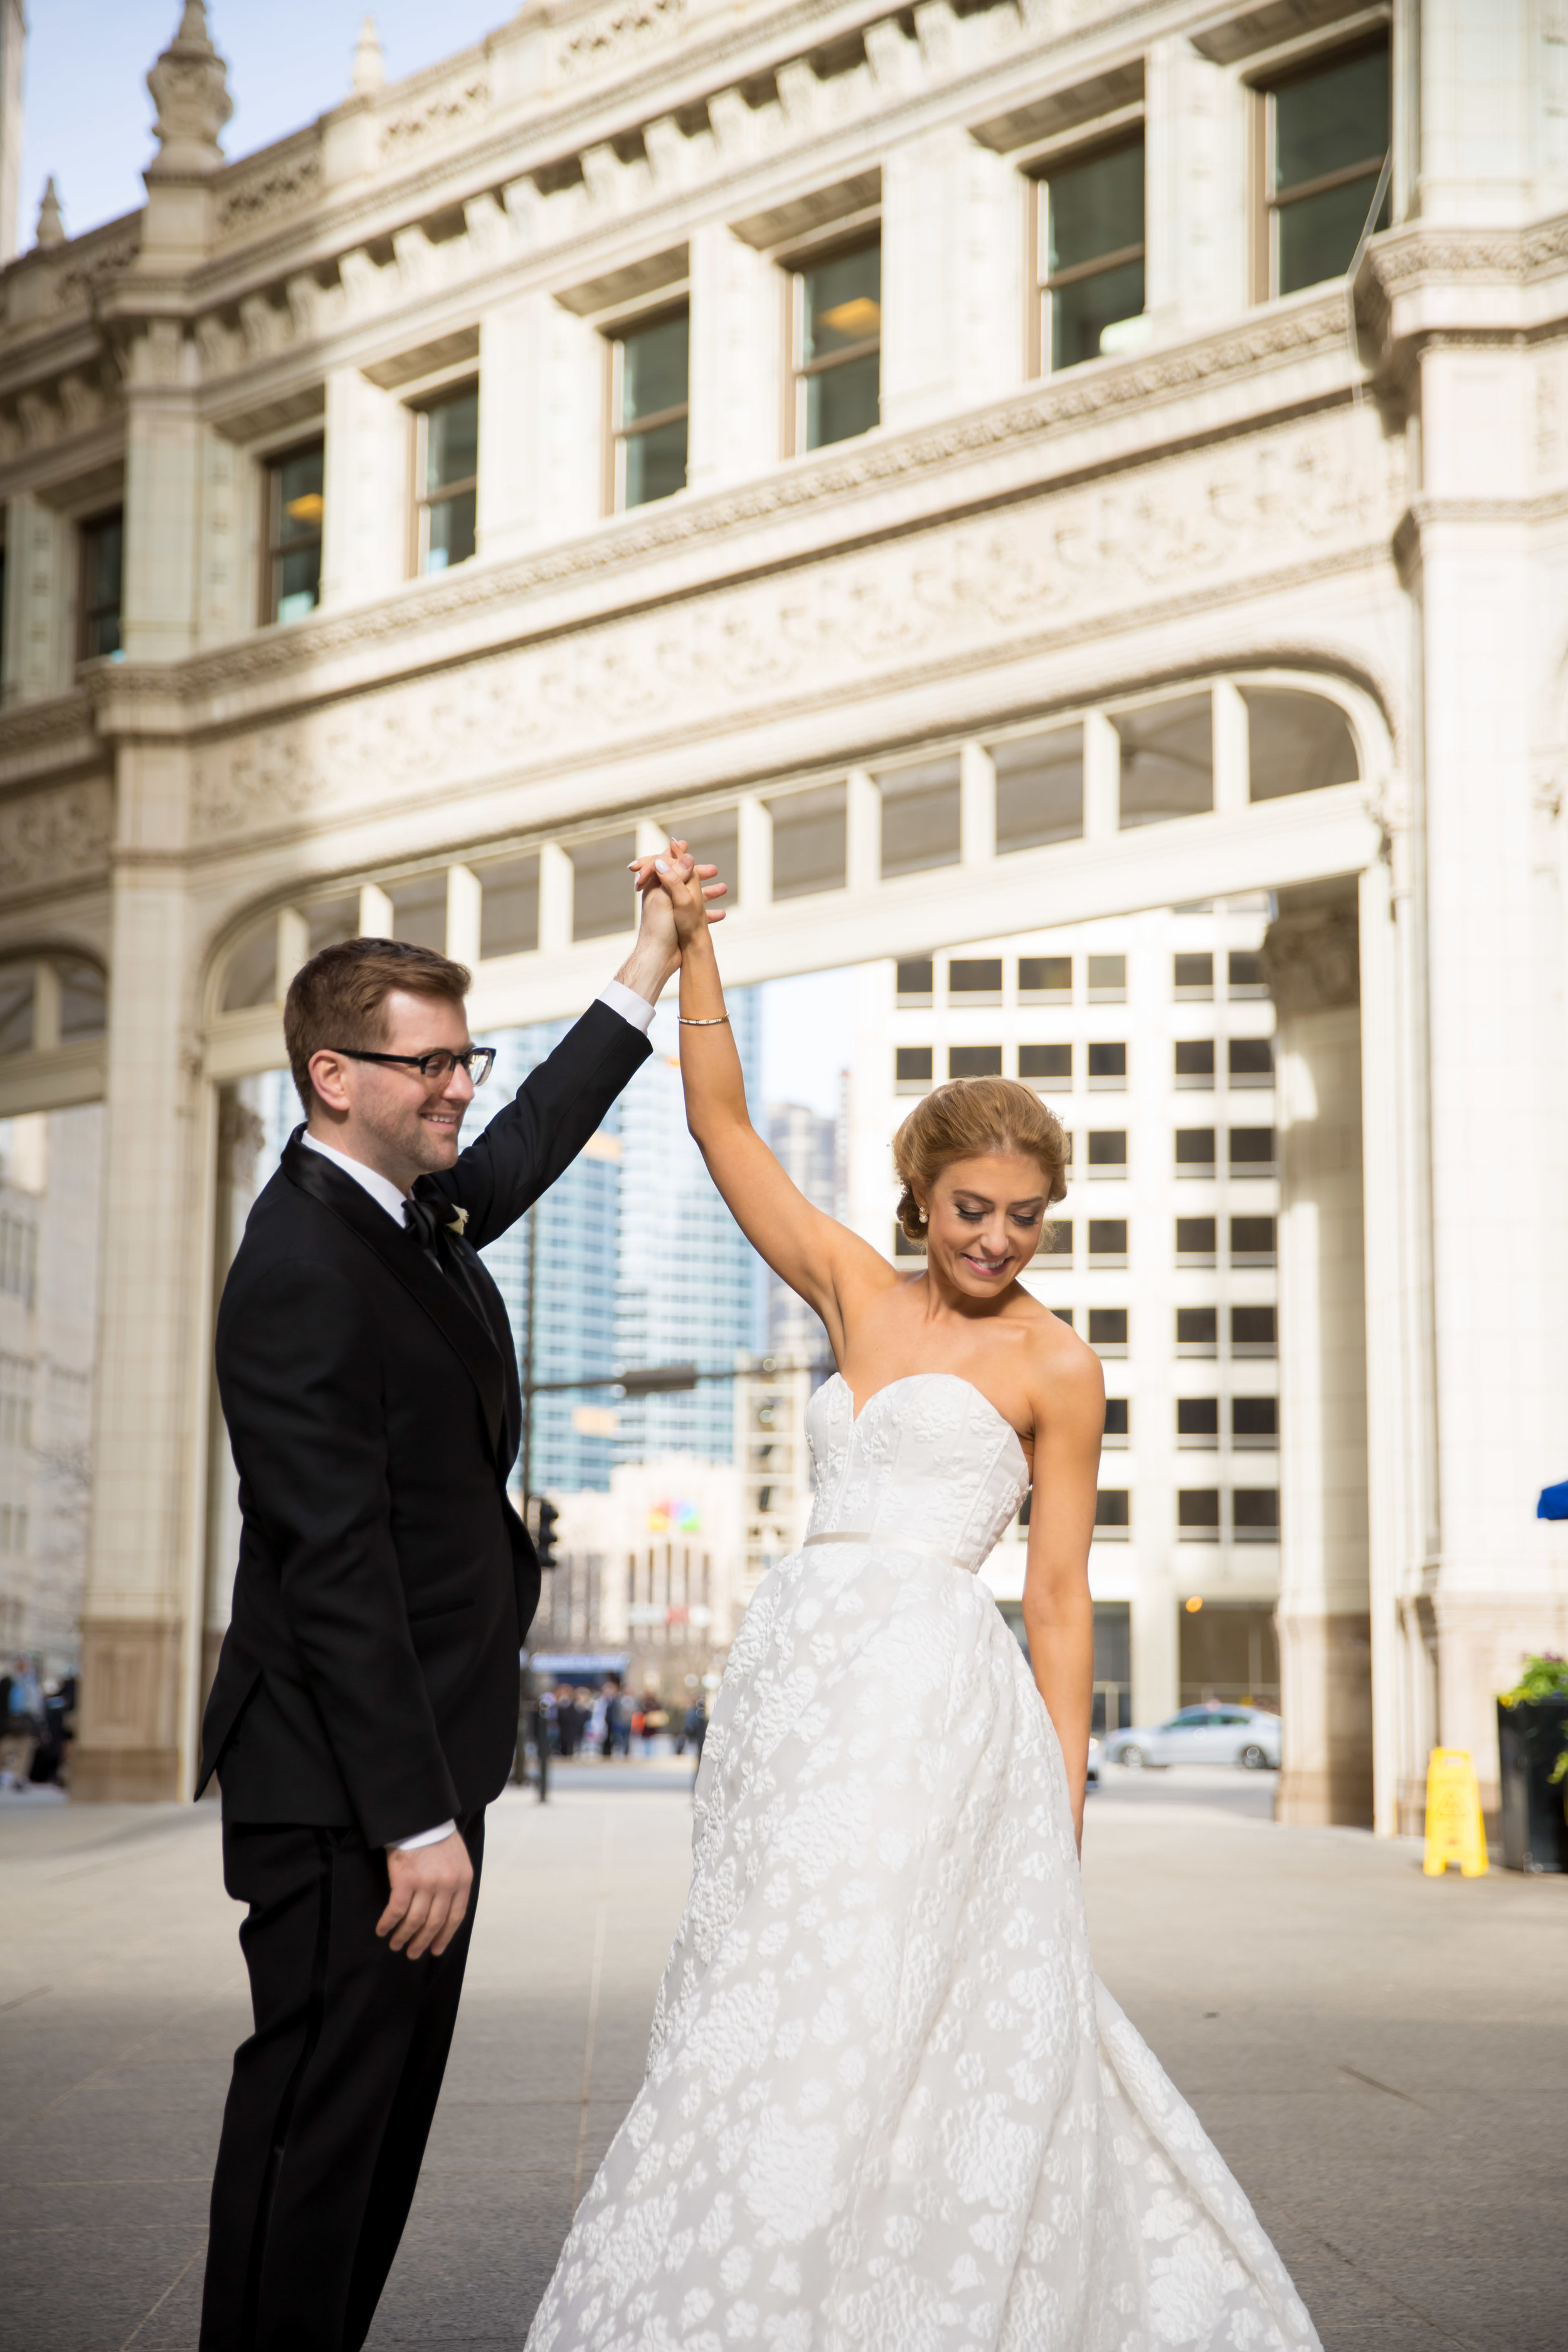 Charming and modern wedding details come together for this royal Chicago wedding captured by Colin Lyons Photography. Find more wedding inspiration at chitheewed.com!